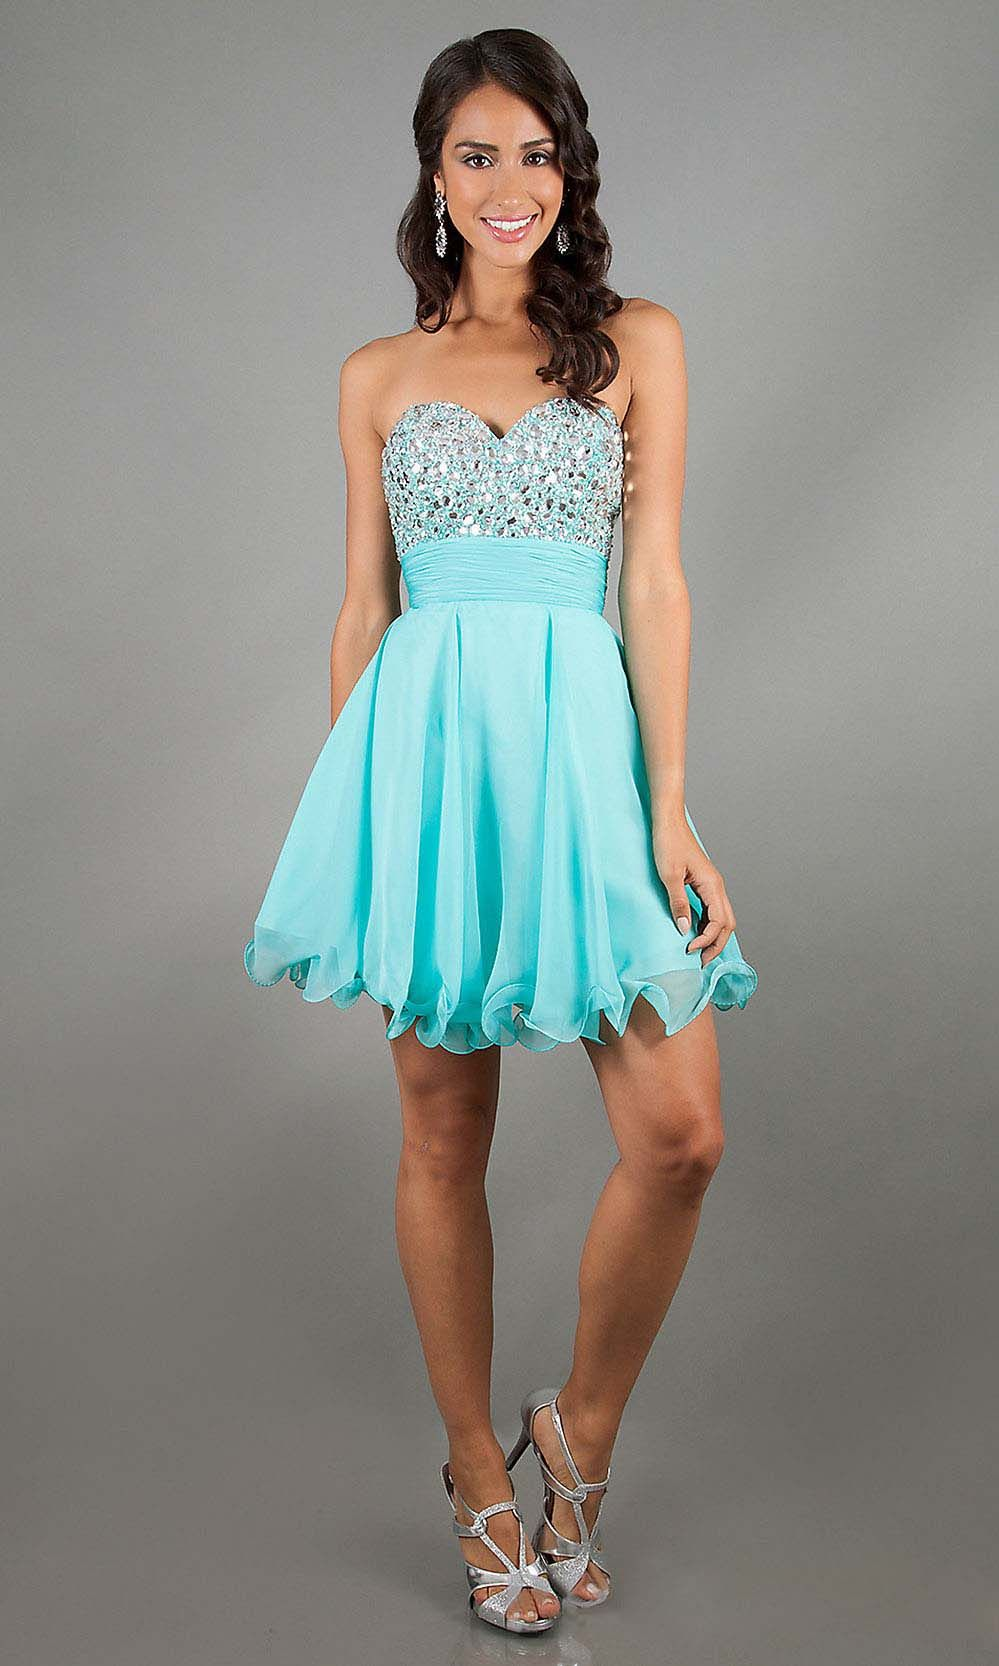 Okbridaldress.com - tiffany blue prom dress, affordable prom dresses ...